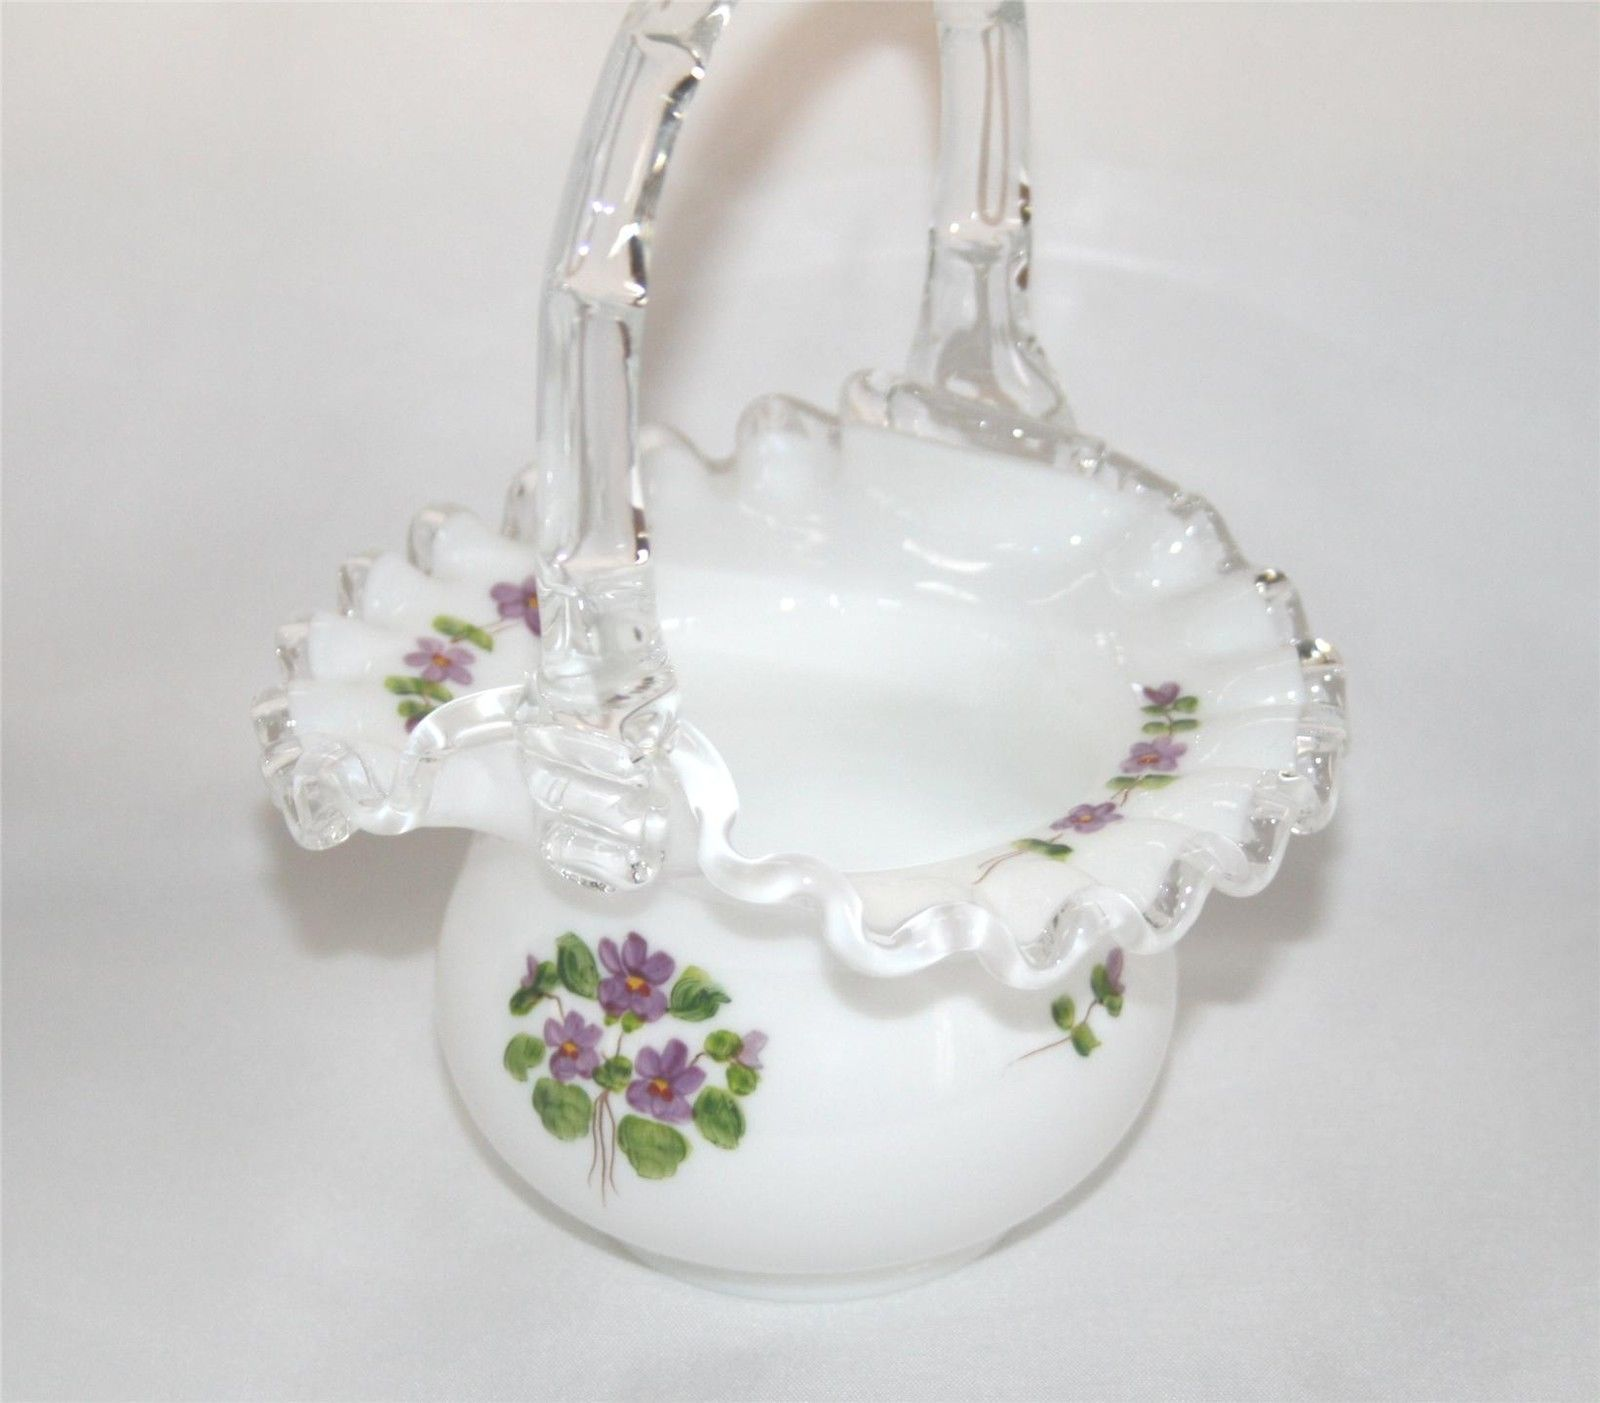 Primary image for Fenton Silvercrest Hand Painted Violets in the Snow Basket, Unsigned    #1345